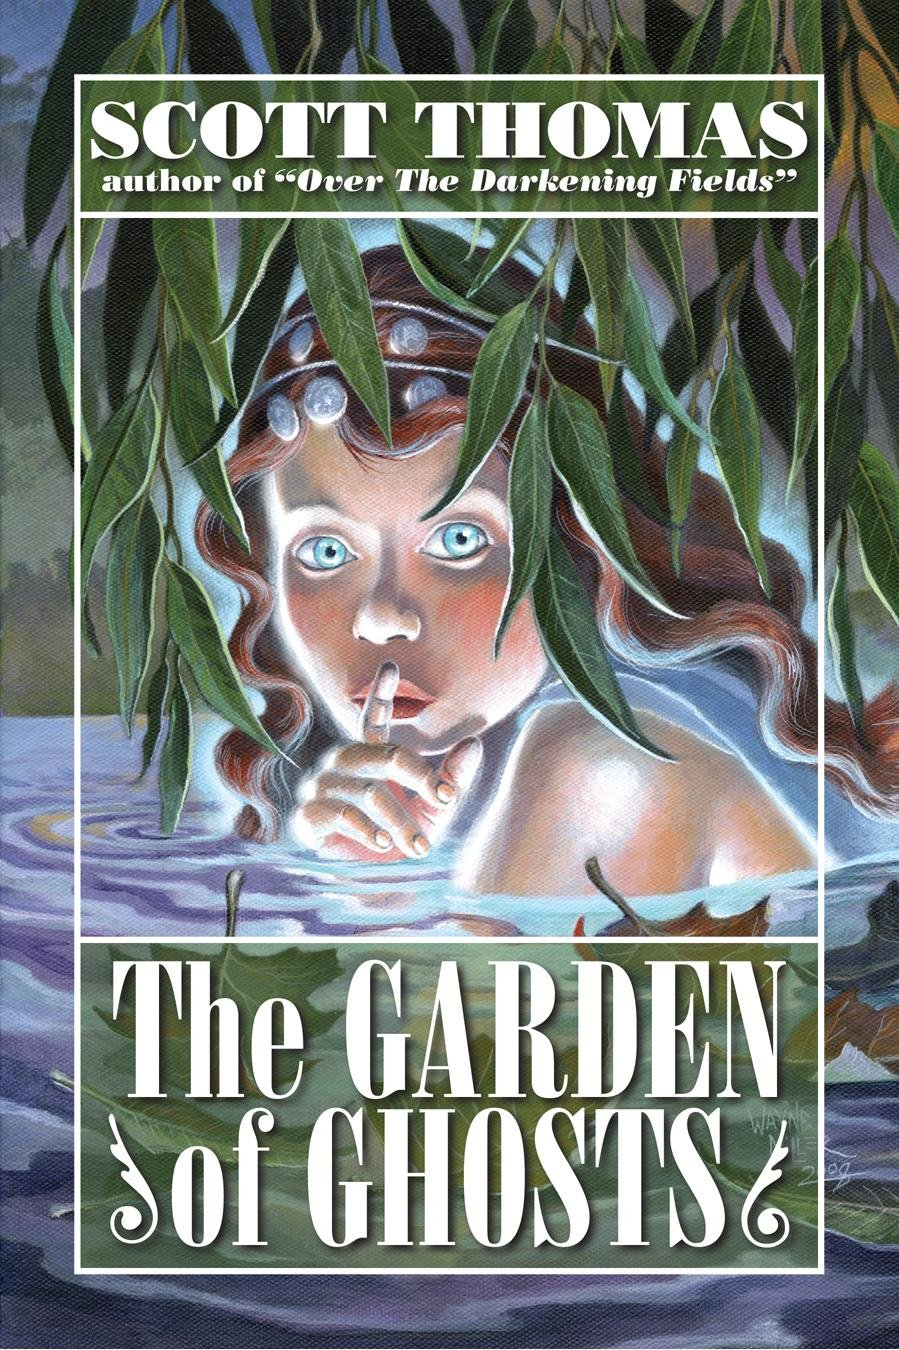 Amazon.in: Buy The Garden of Ghosts Book Online at Low Prices in India |  The Garden of Ghosts Reviews & Ratings